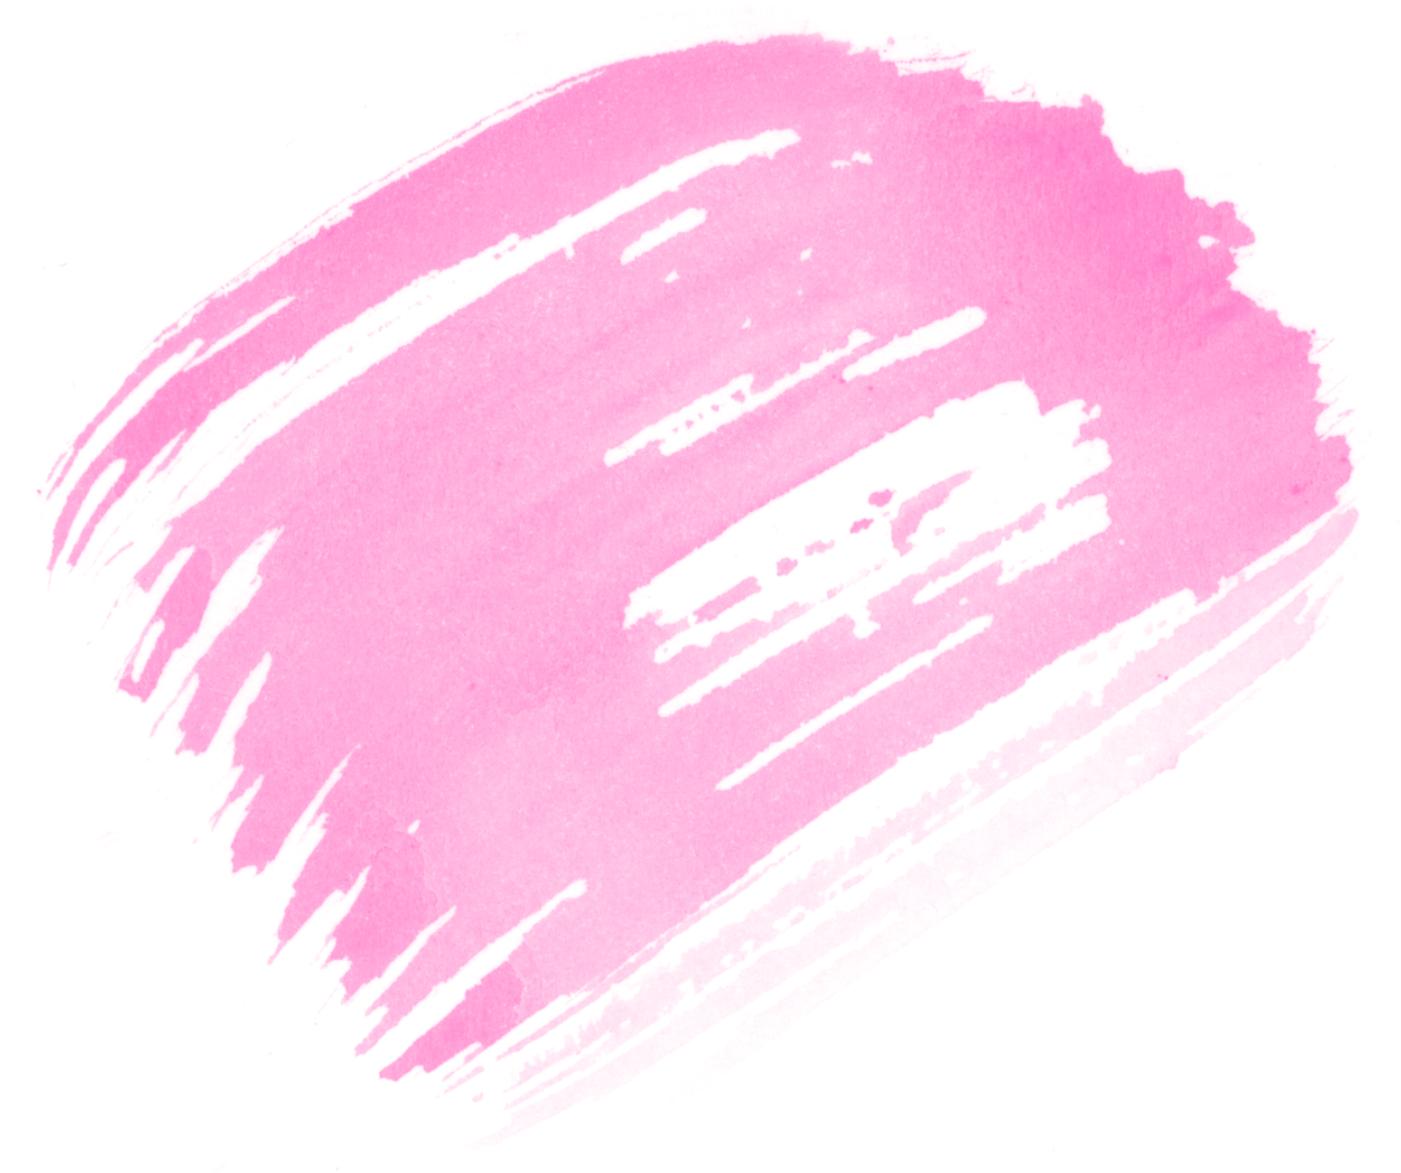 WatercolorSplashesPink_0012_Layer-21